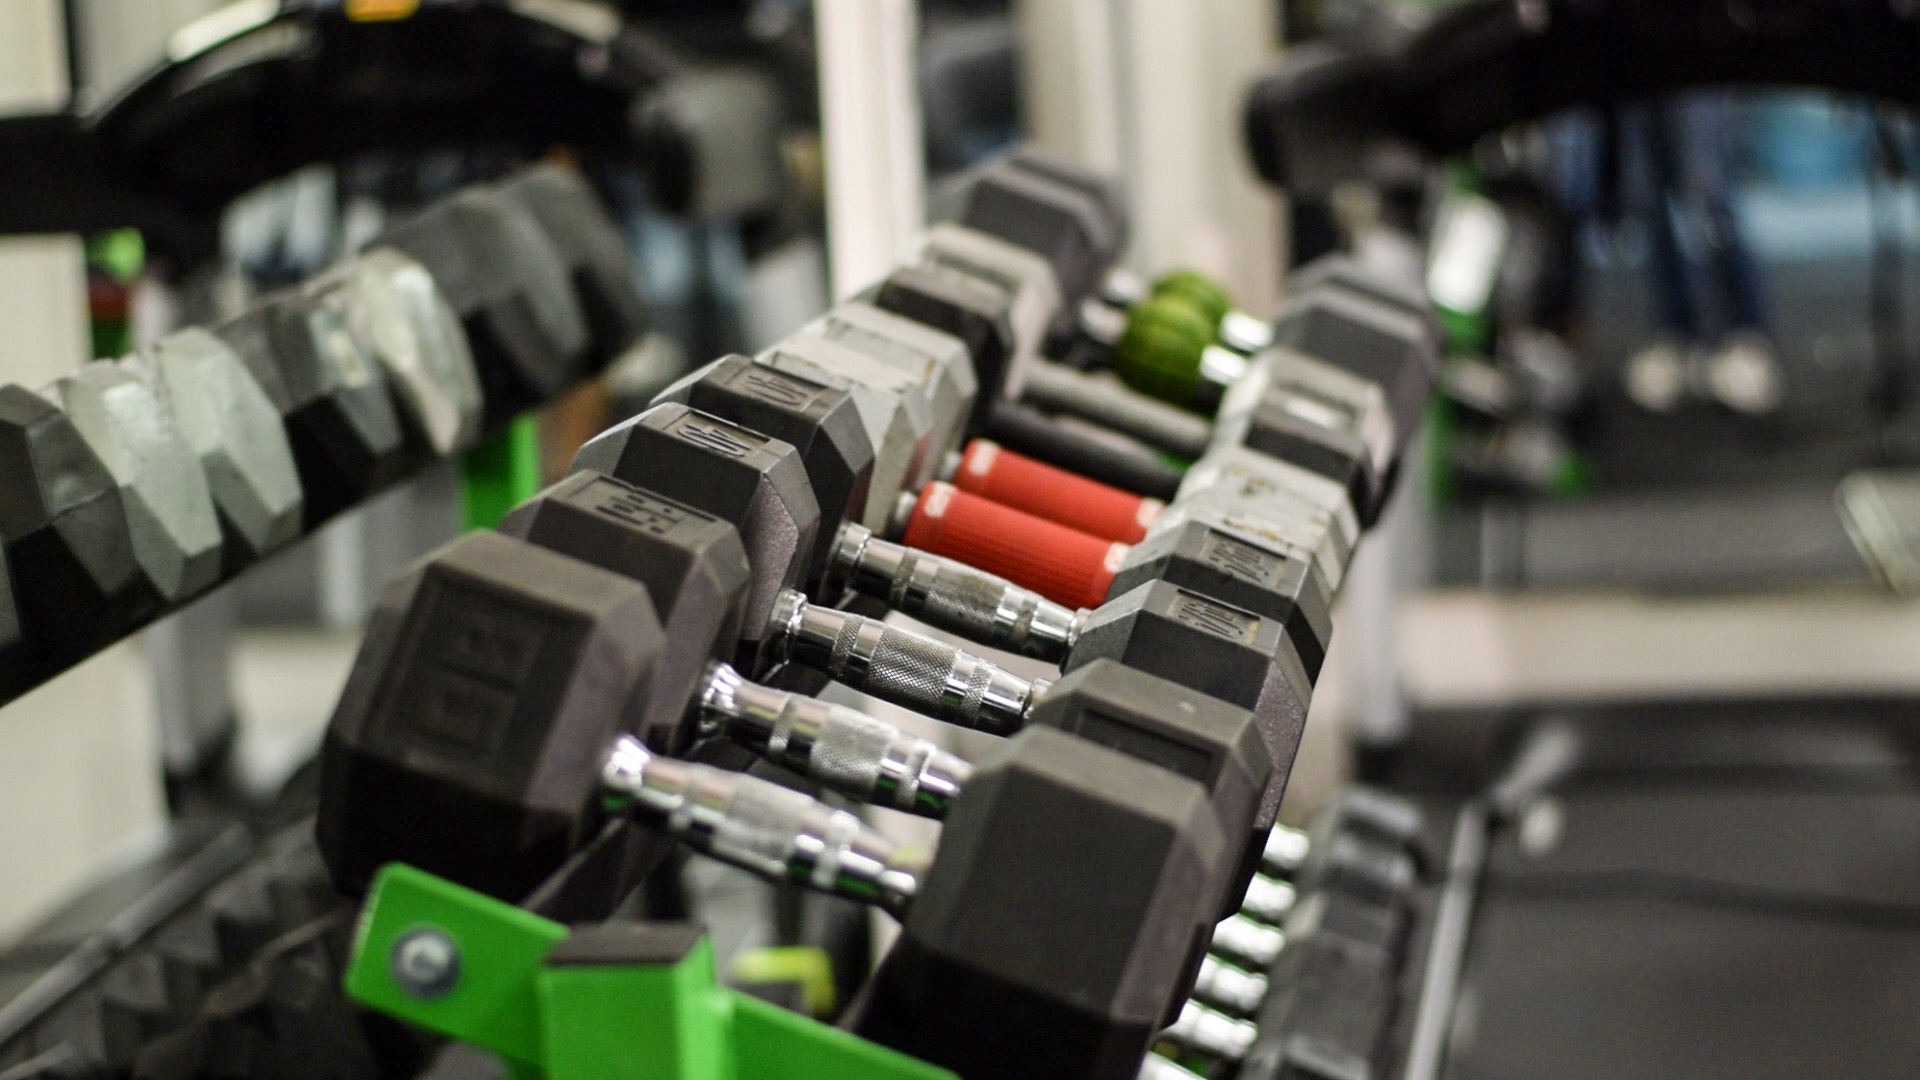 6 dumbells on rack.jpg